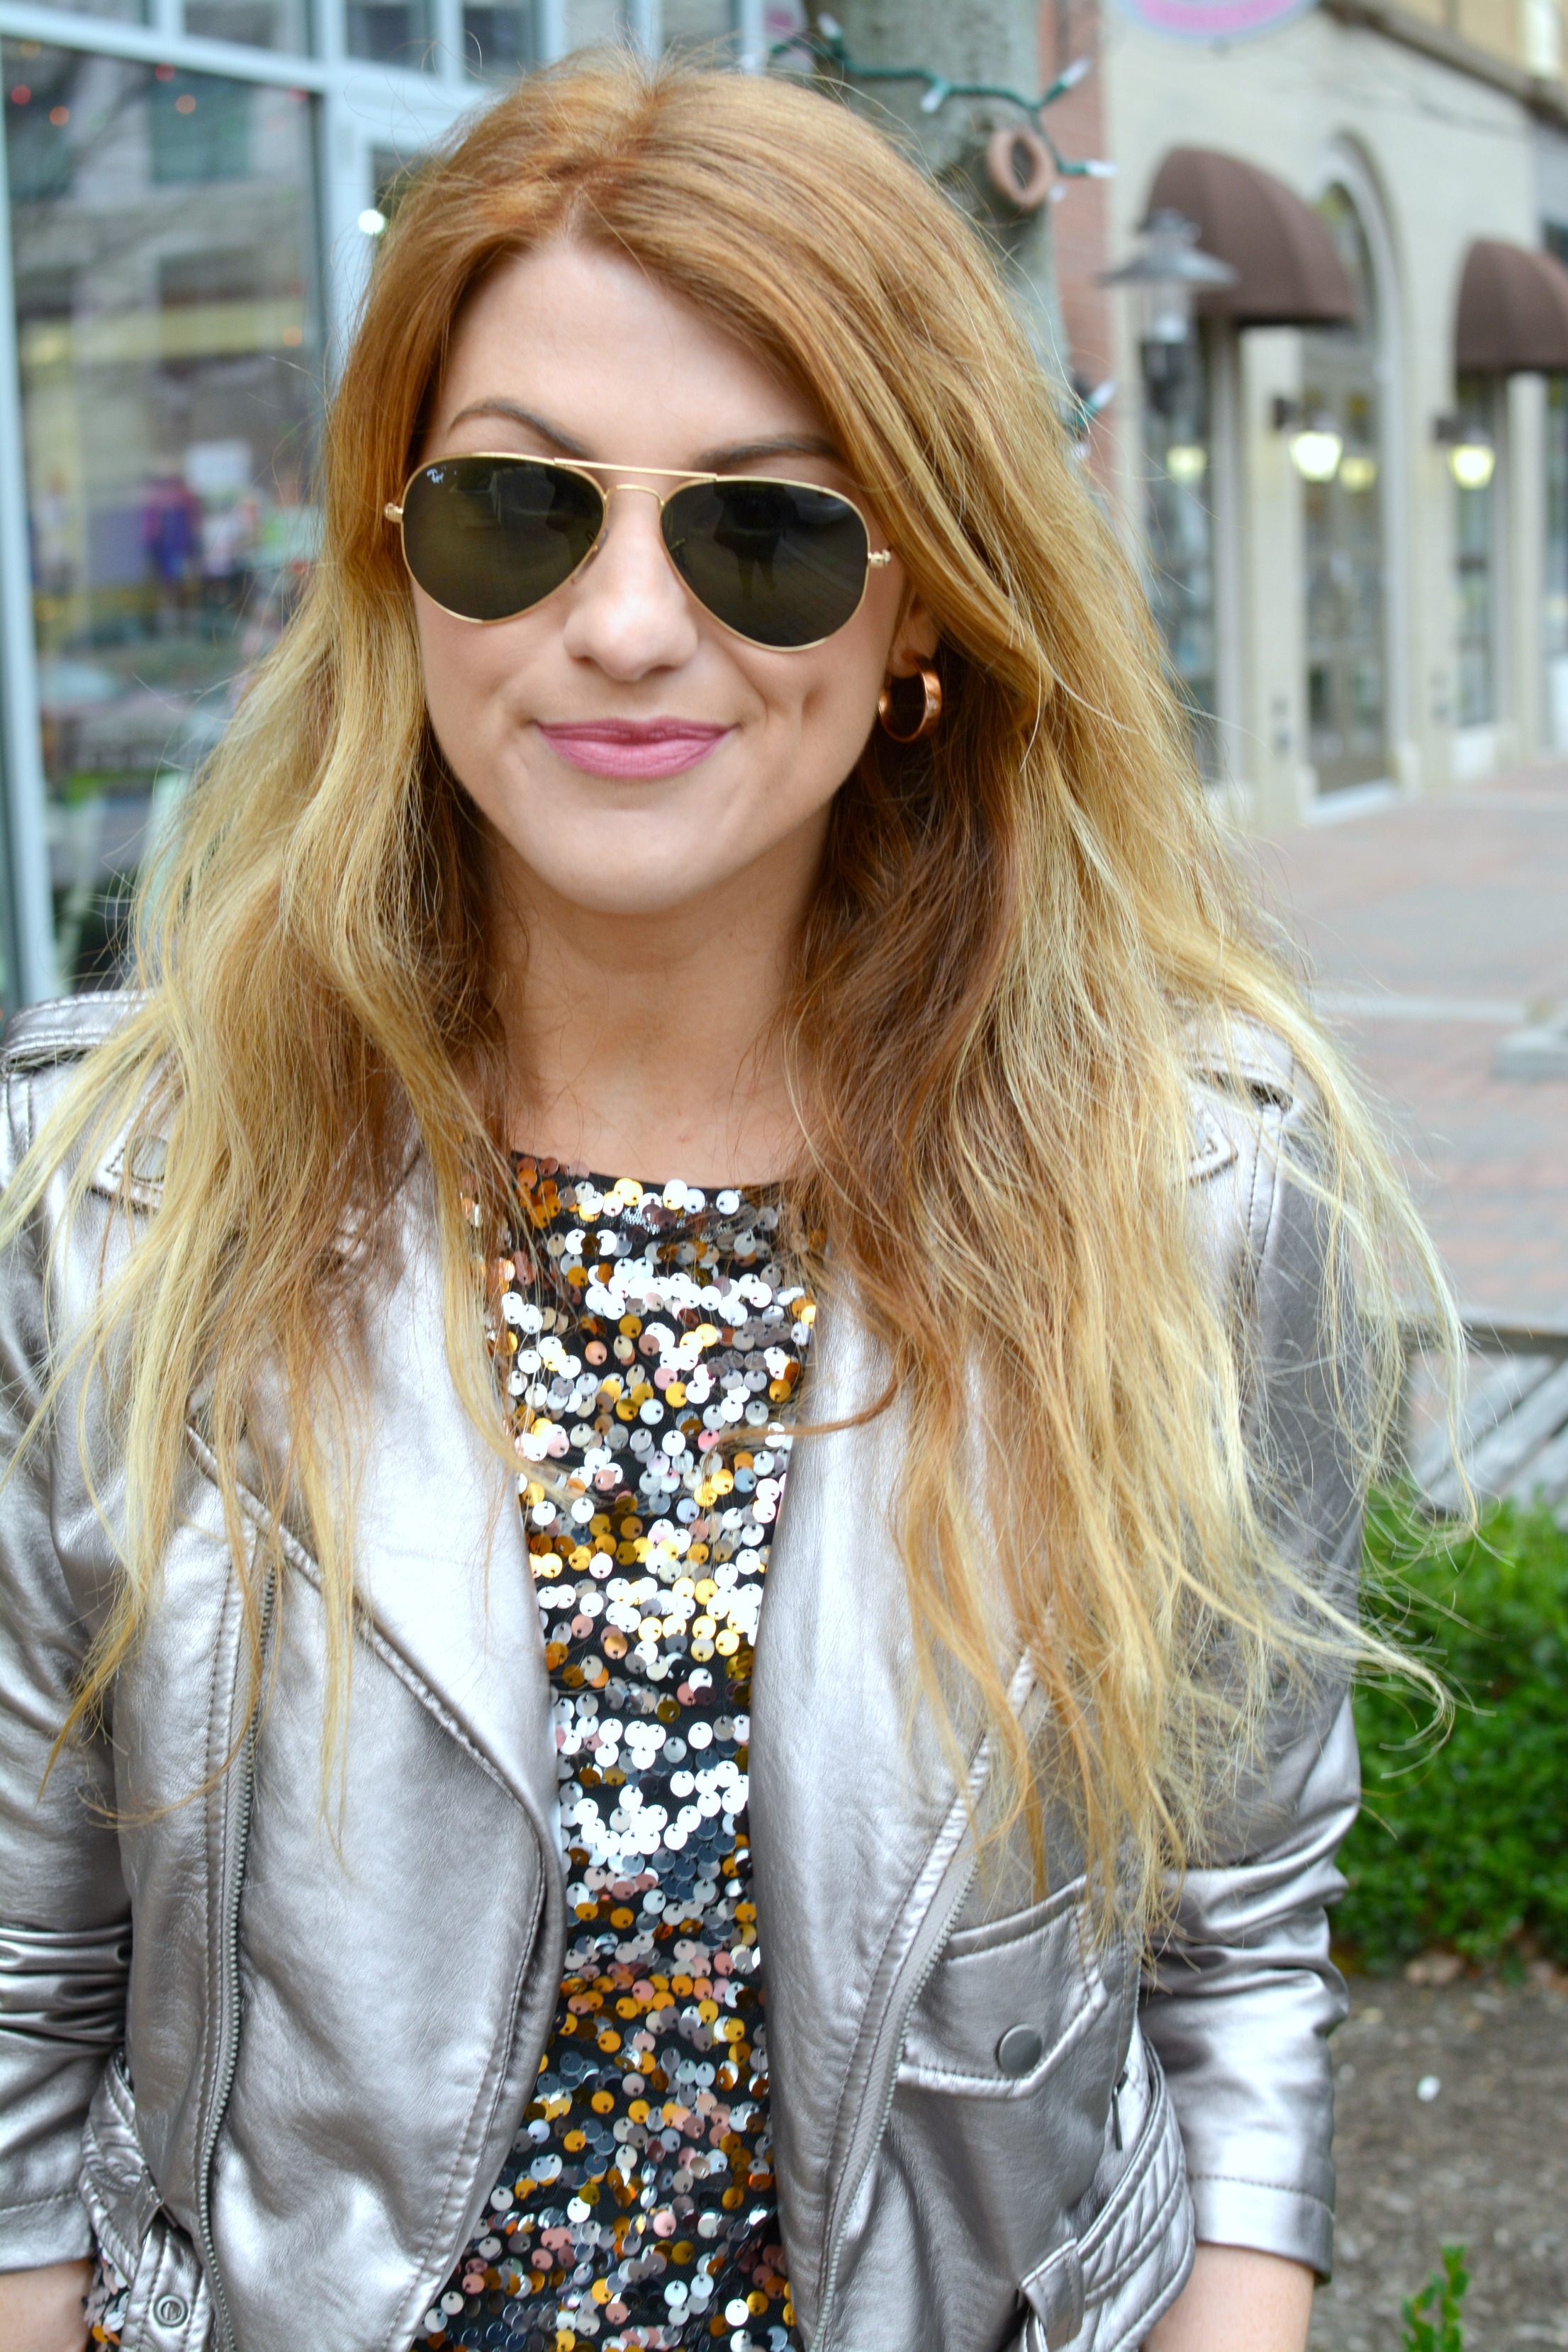 Ashley from LSR in a metallic leather jacket and a sequined top